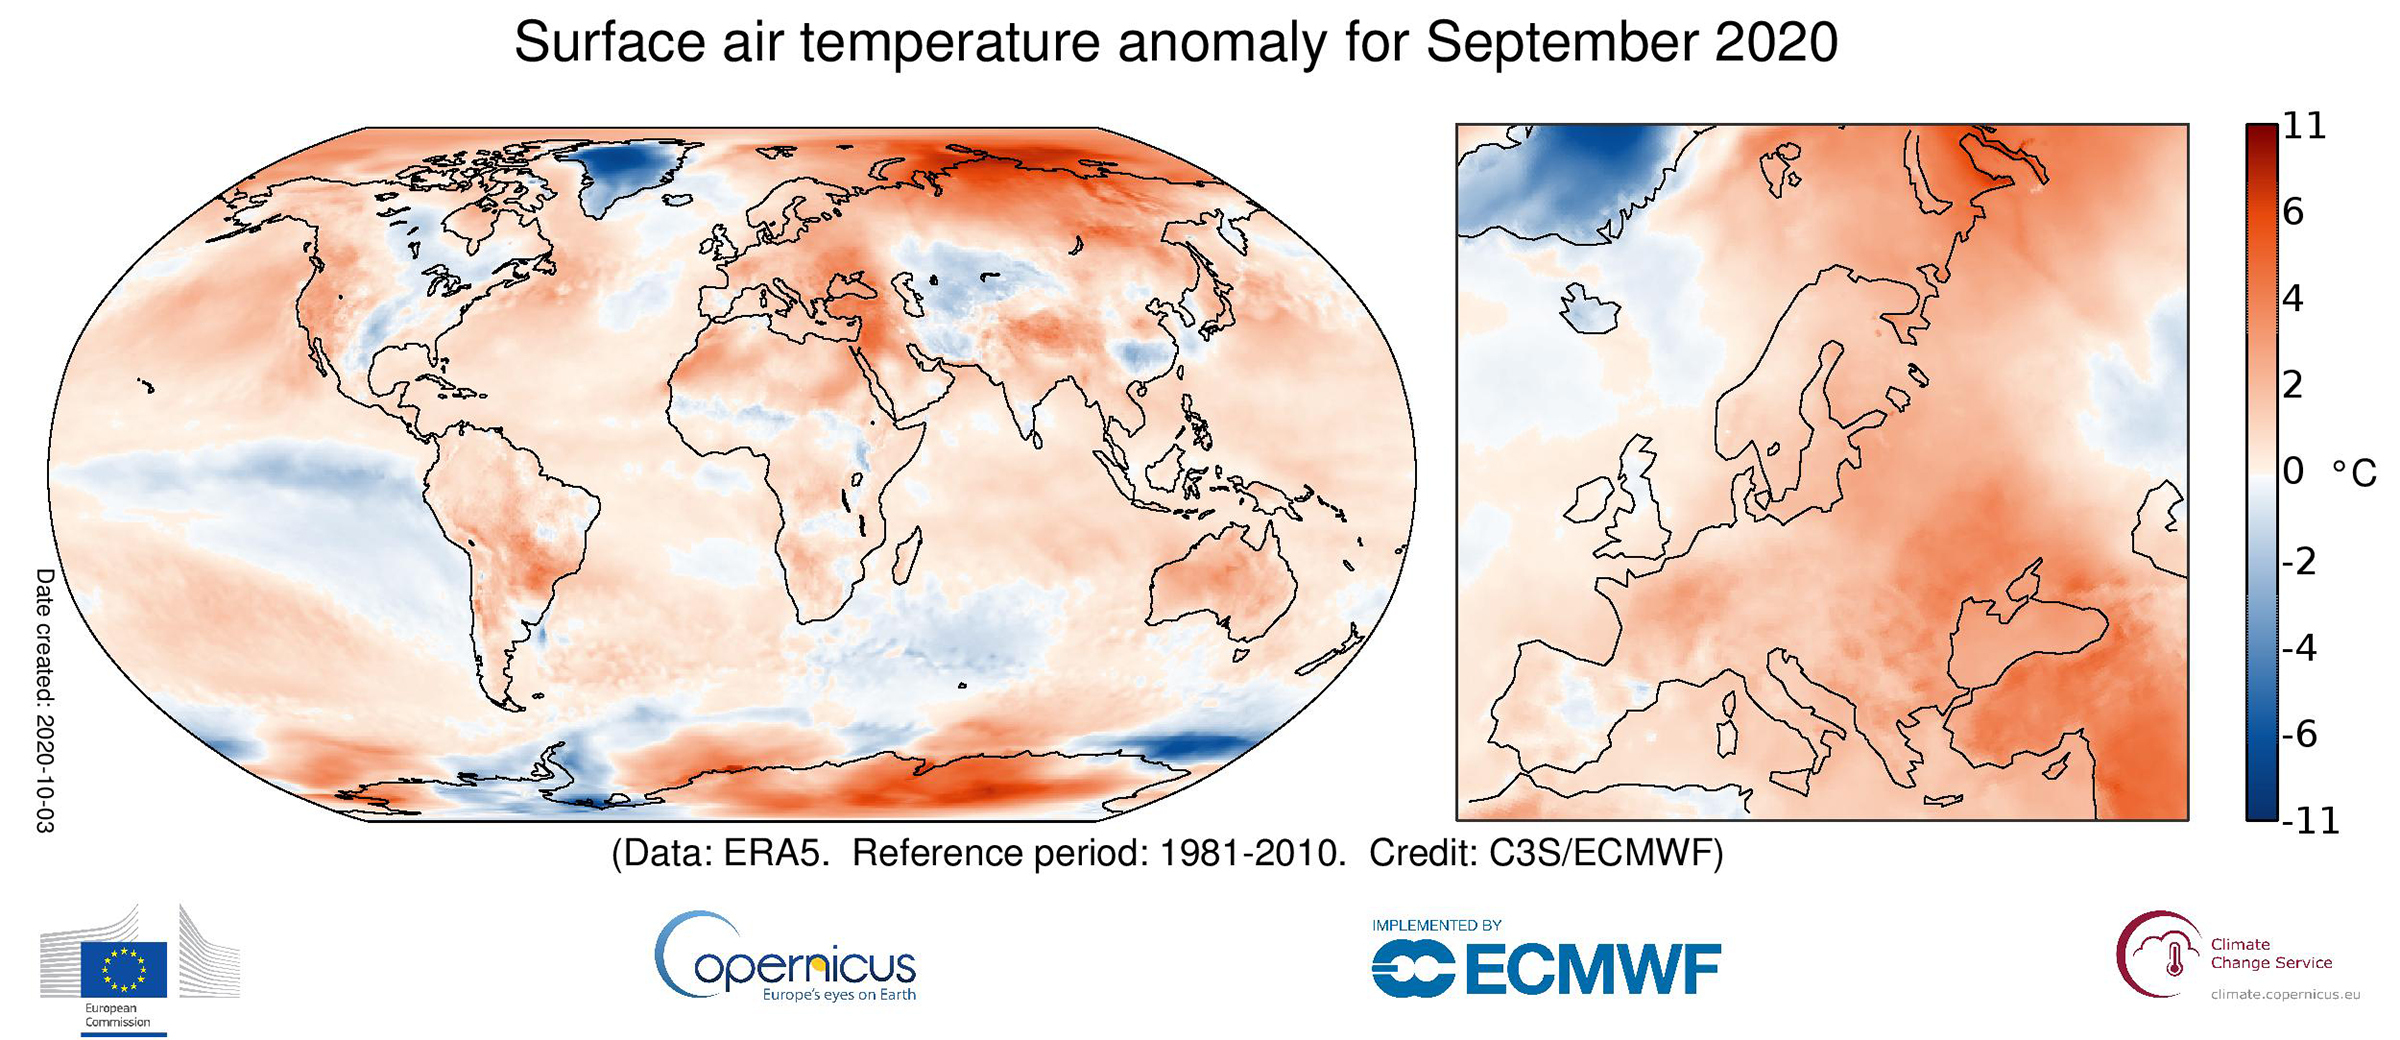 Surface air temperature anomaly for September 2020 relative to the September average for the period 1981-2010. Data source: ERA5.